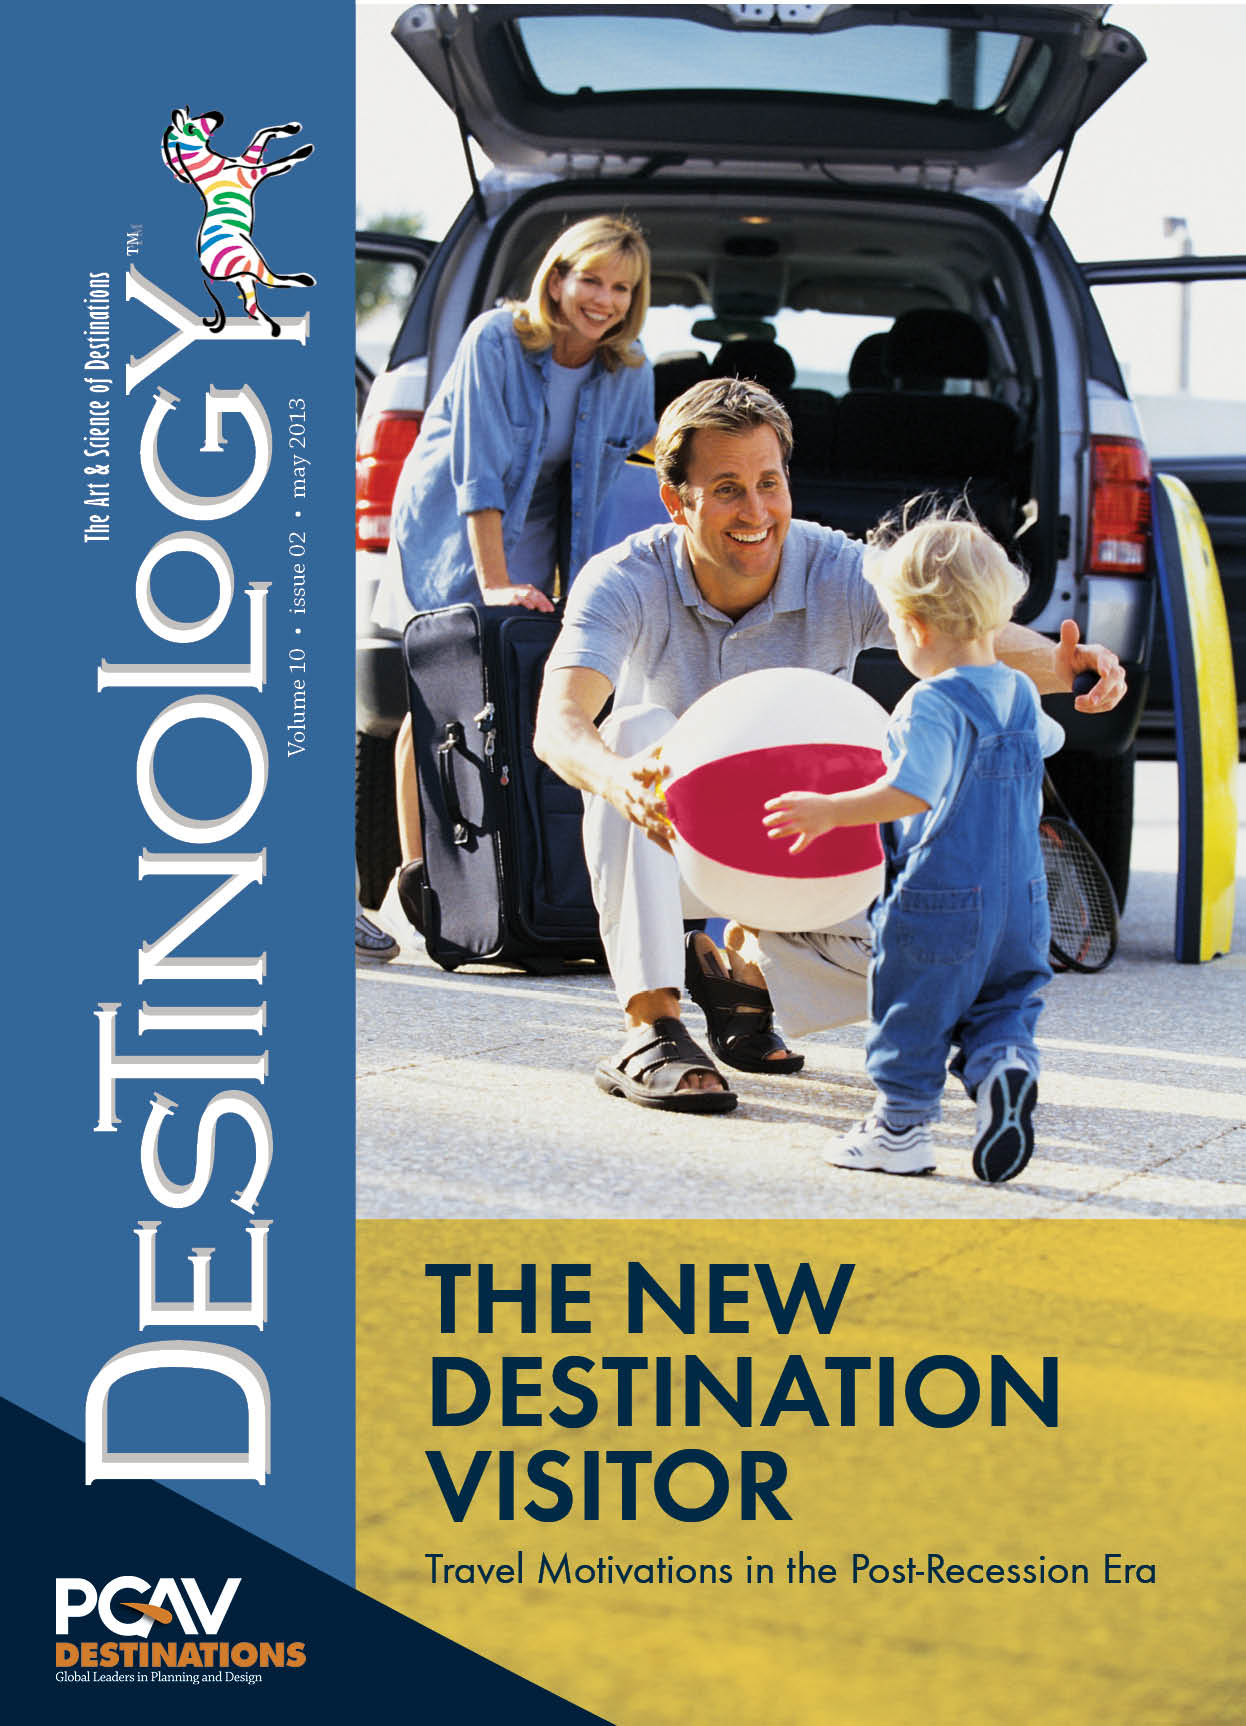 Destinology: The New Destination Visitor